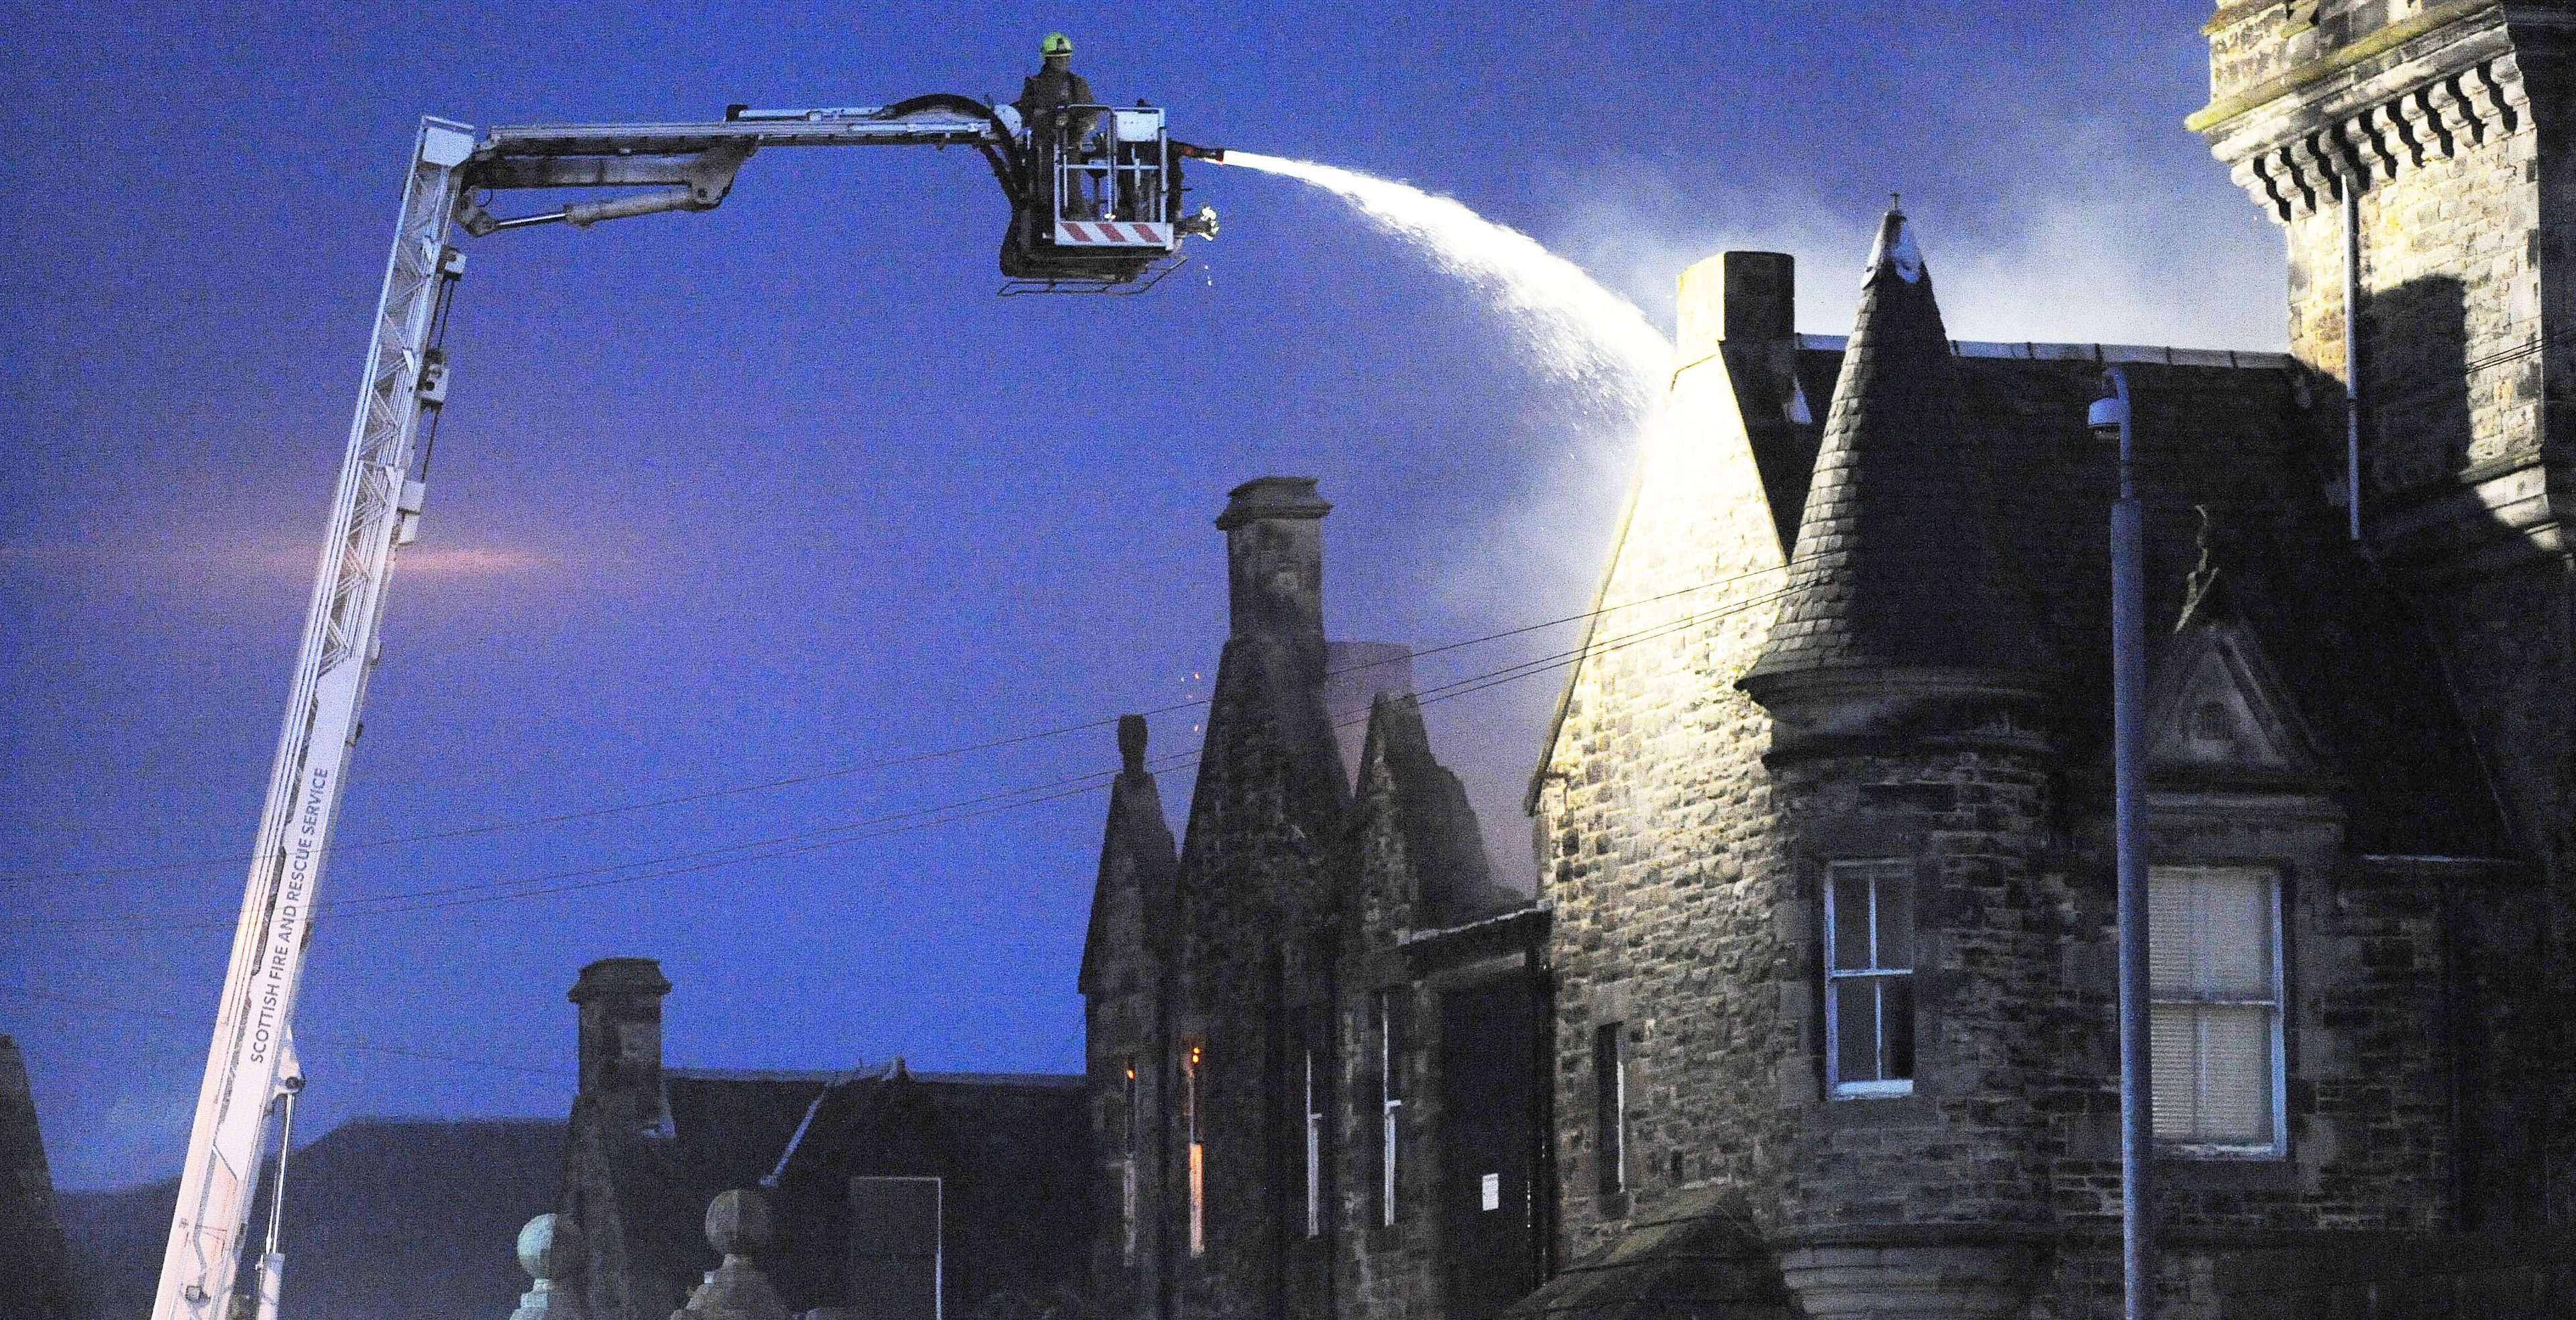 Fire at the old Viewforth High School in Kirkcaldy.